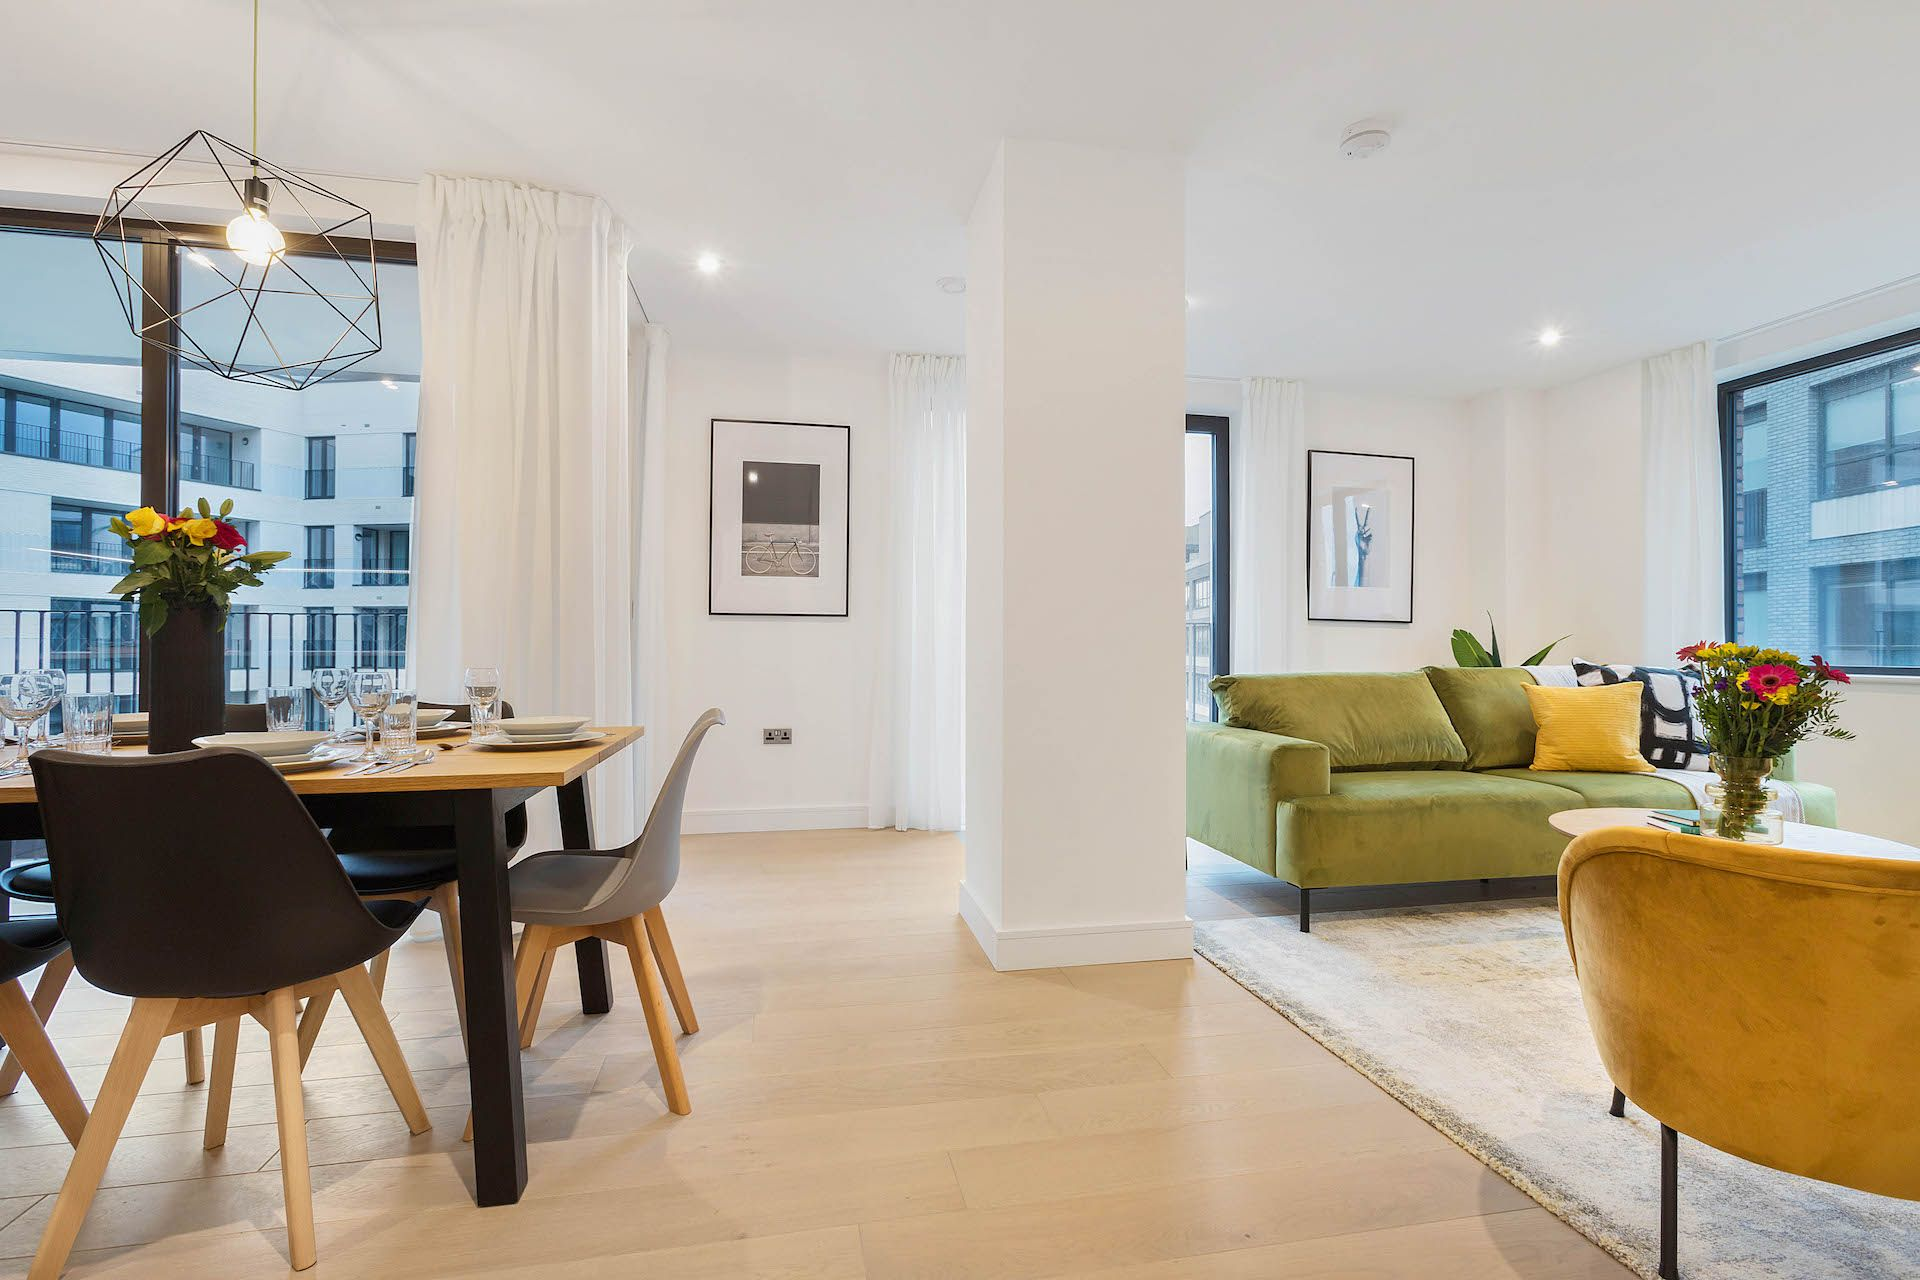 1 Bedroom apartment to rent in London SHO-RO-0073